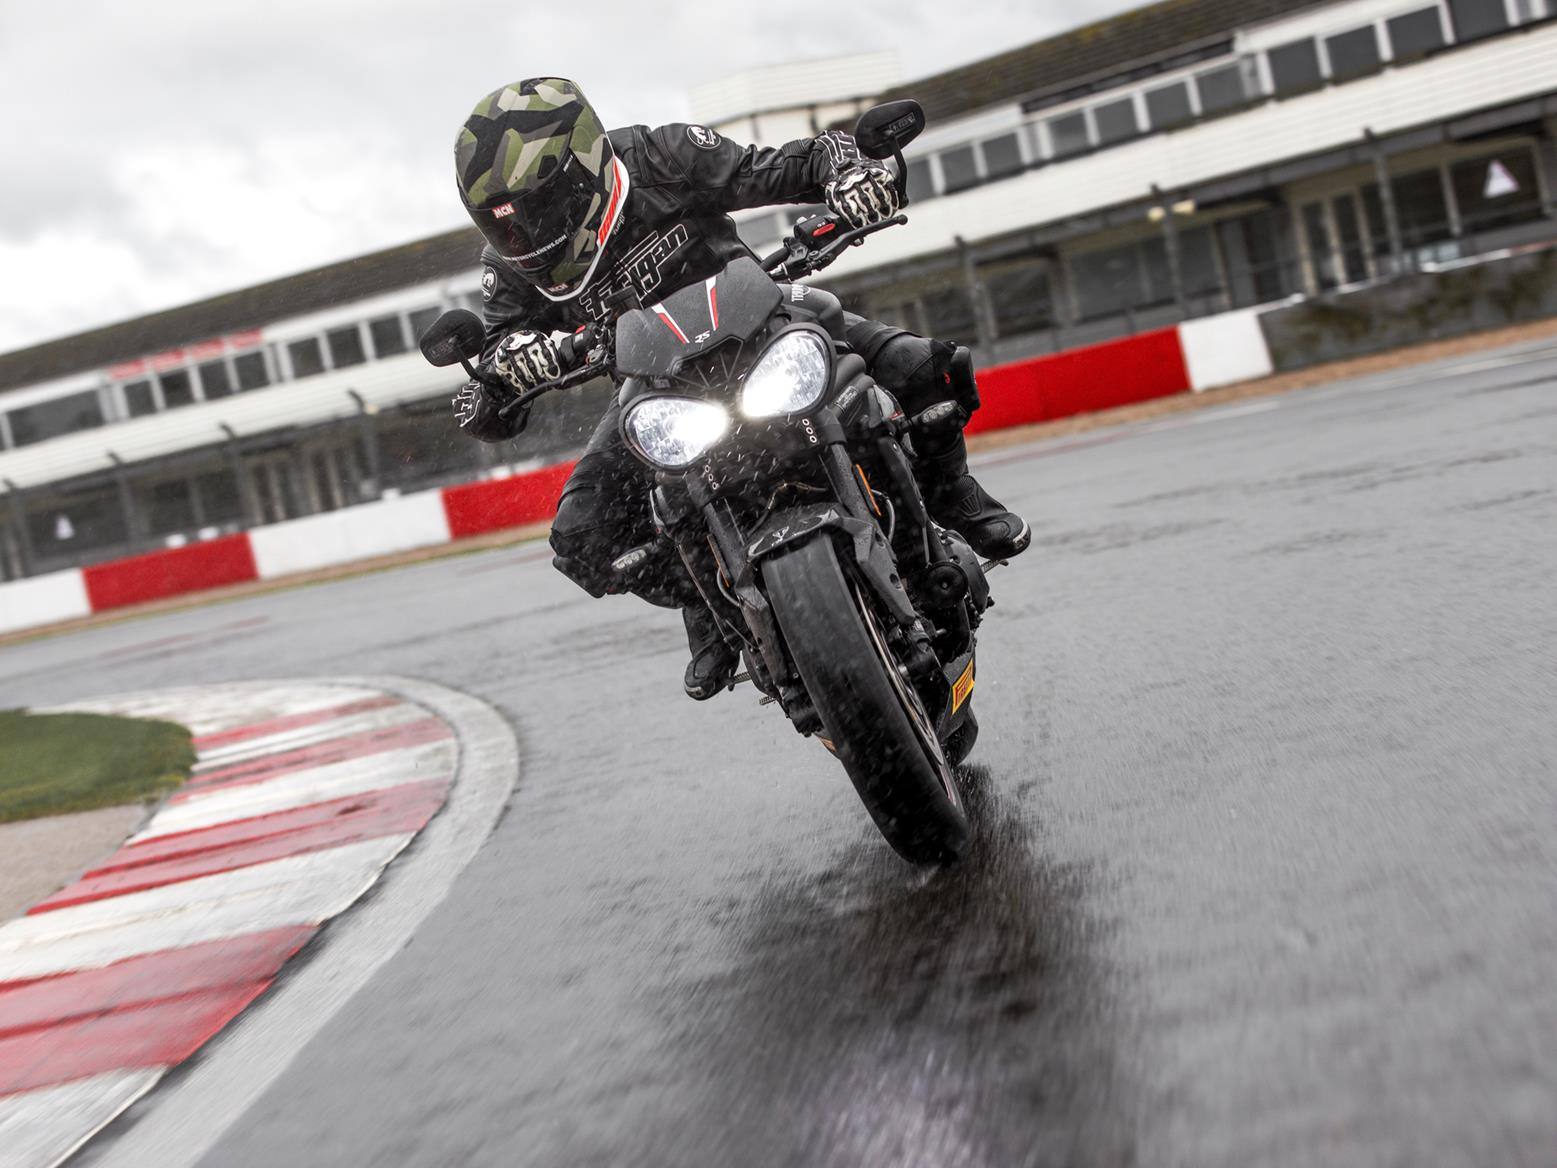 Be very careful with your racing lines while riding on a circuit in the wet